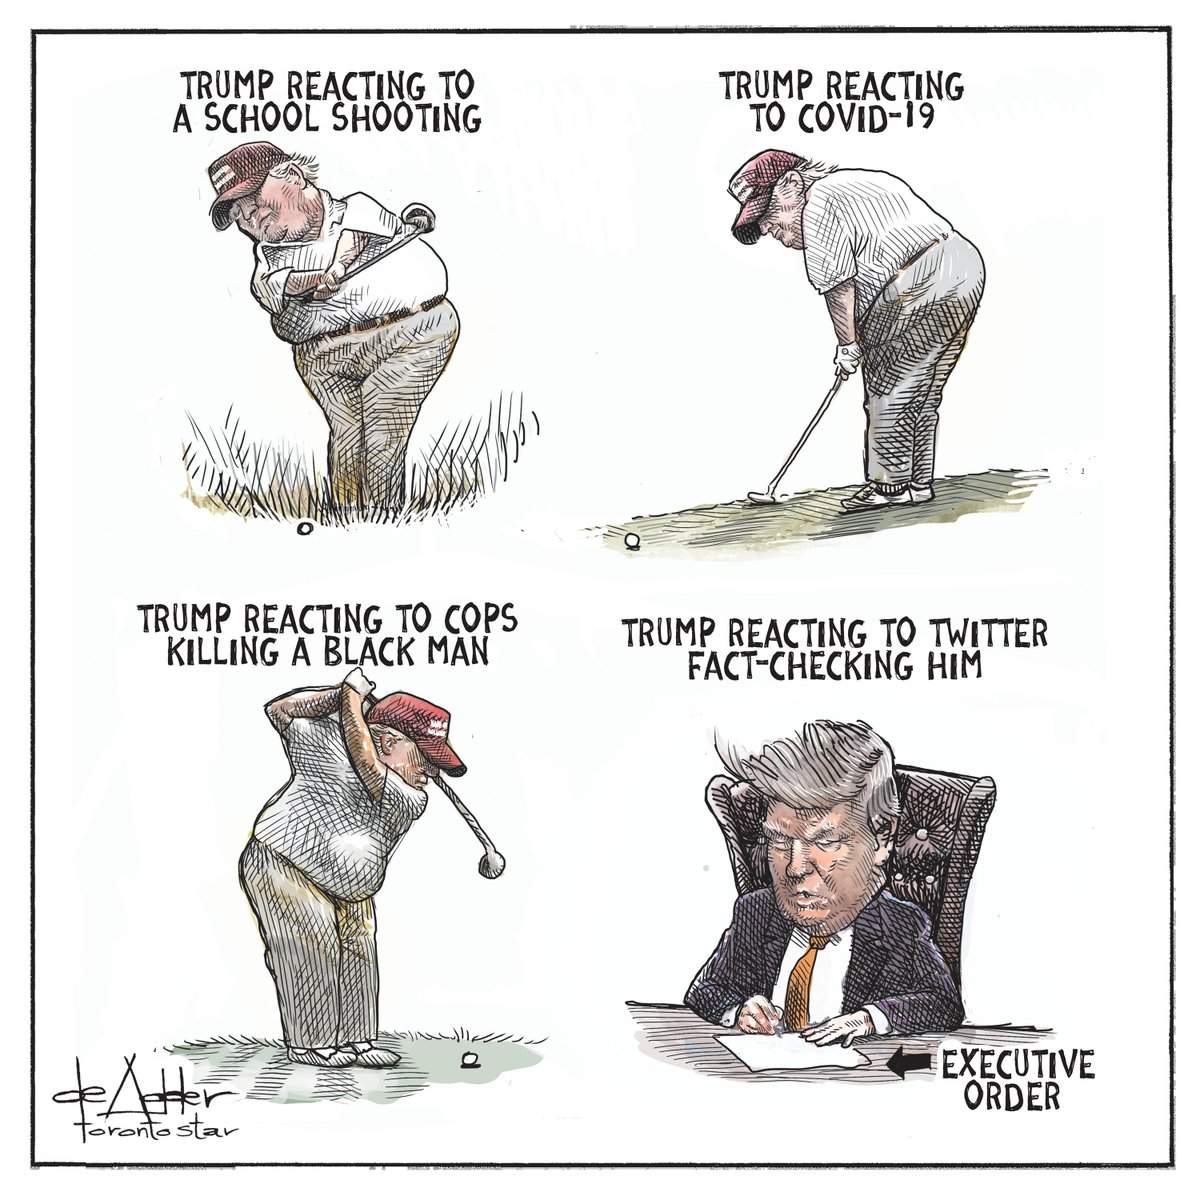 Another sad but true editorial cartoon from the great @deAdder!